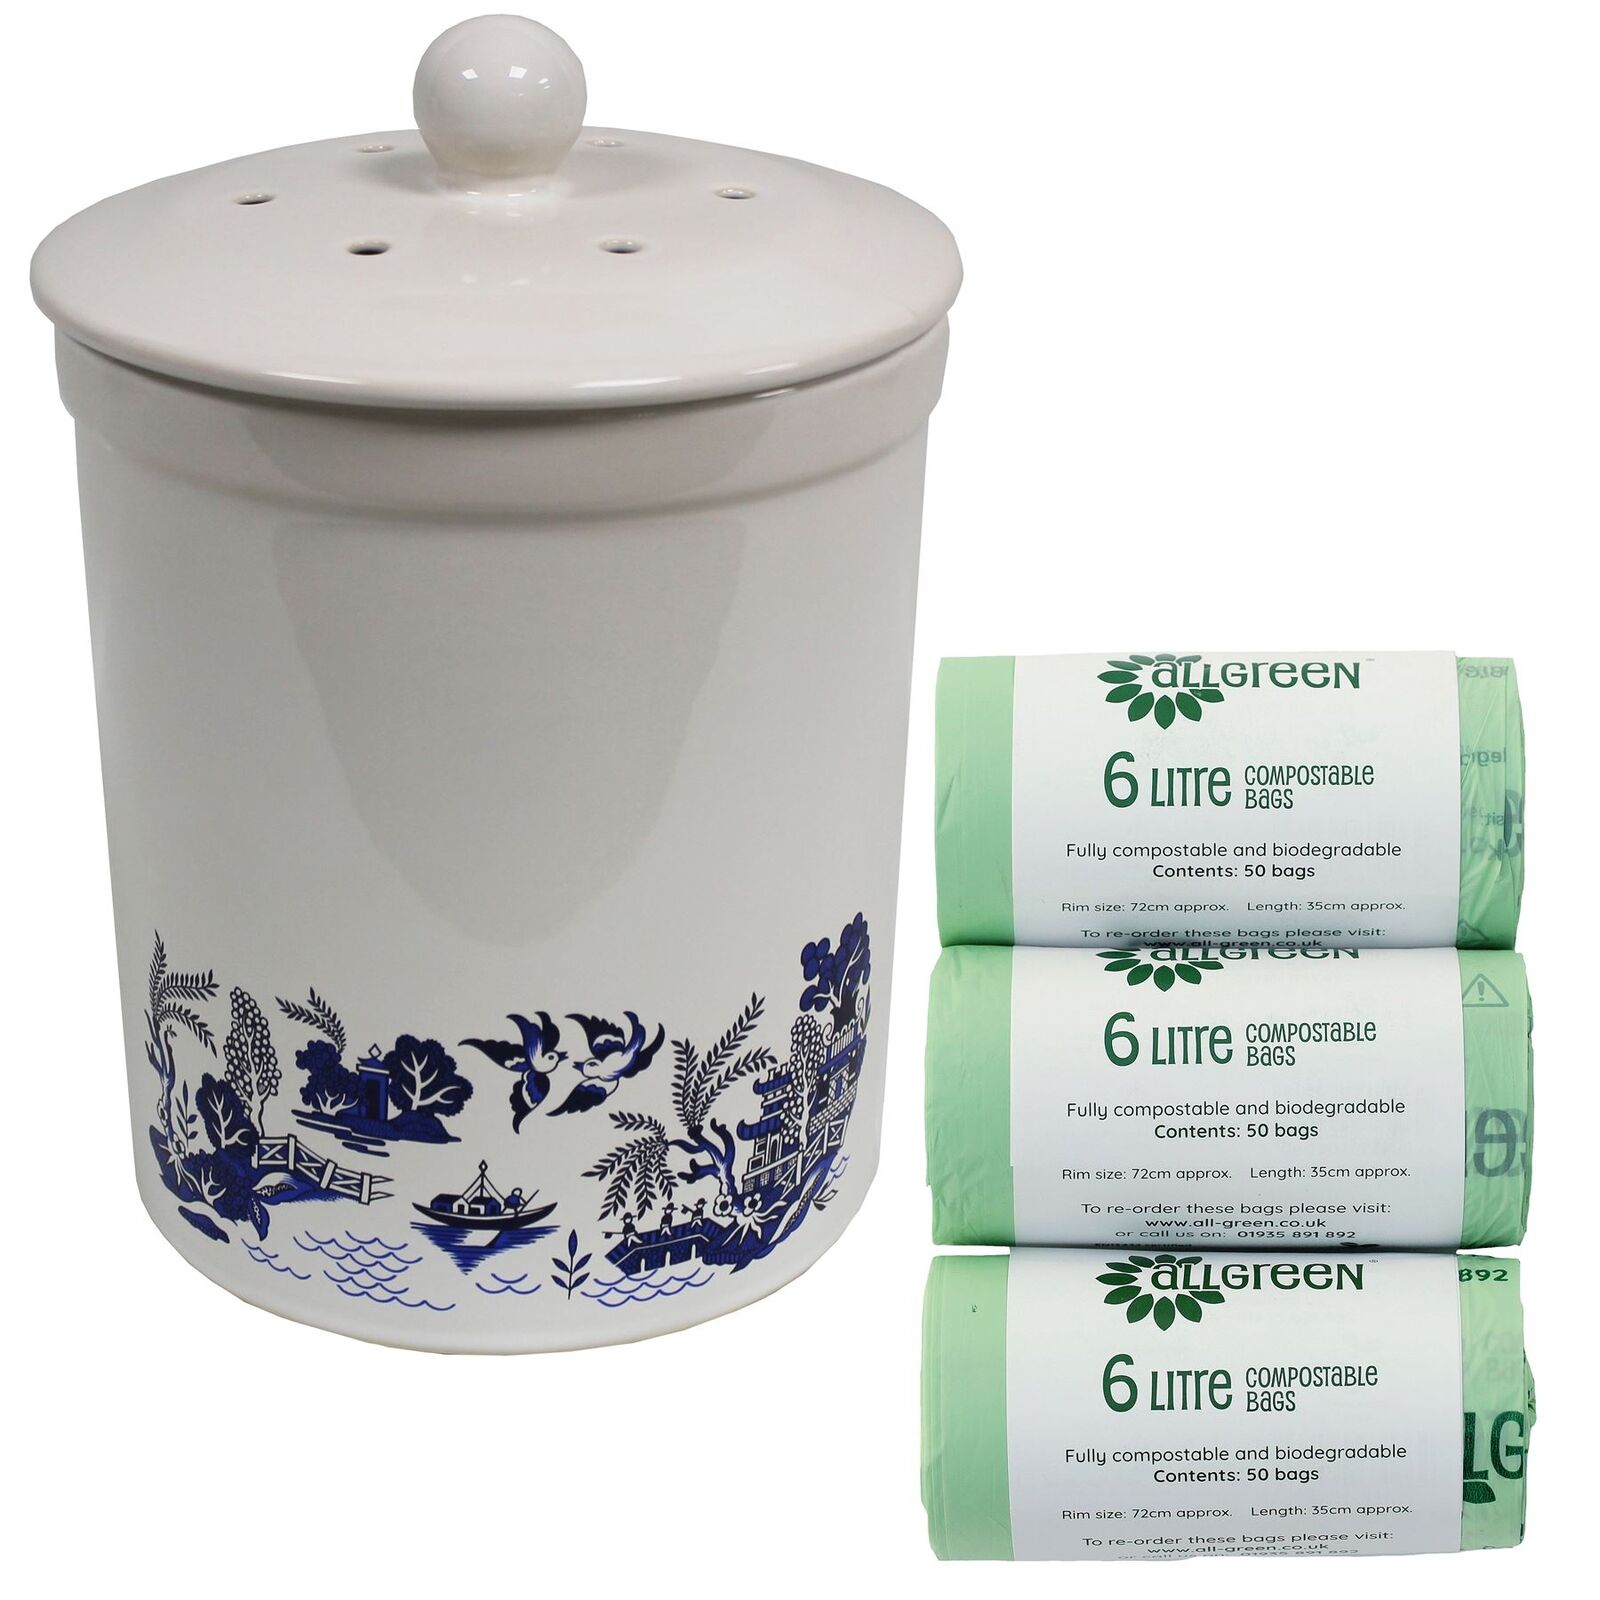 3L Ashmore Blau-Willow Ceramic Compost Food Caddy & 150 x 6L Compostable Bags